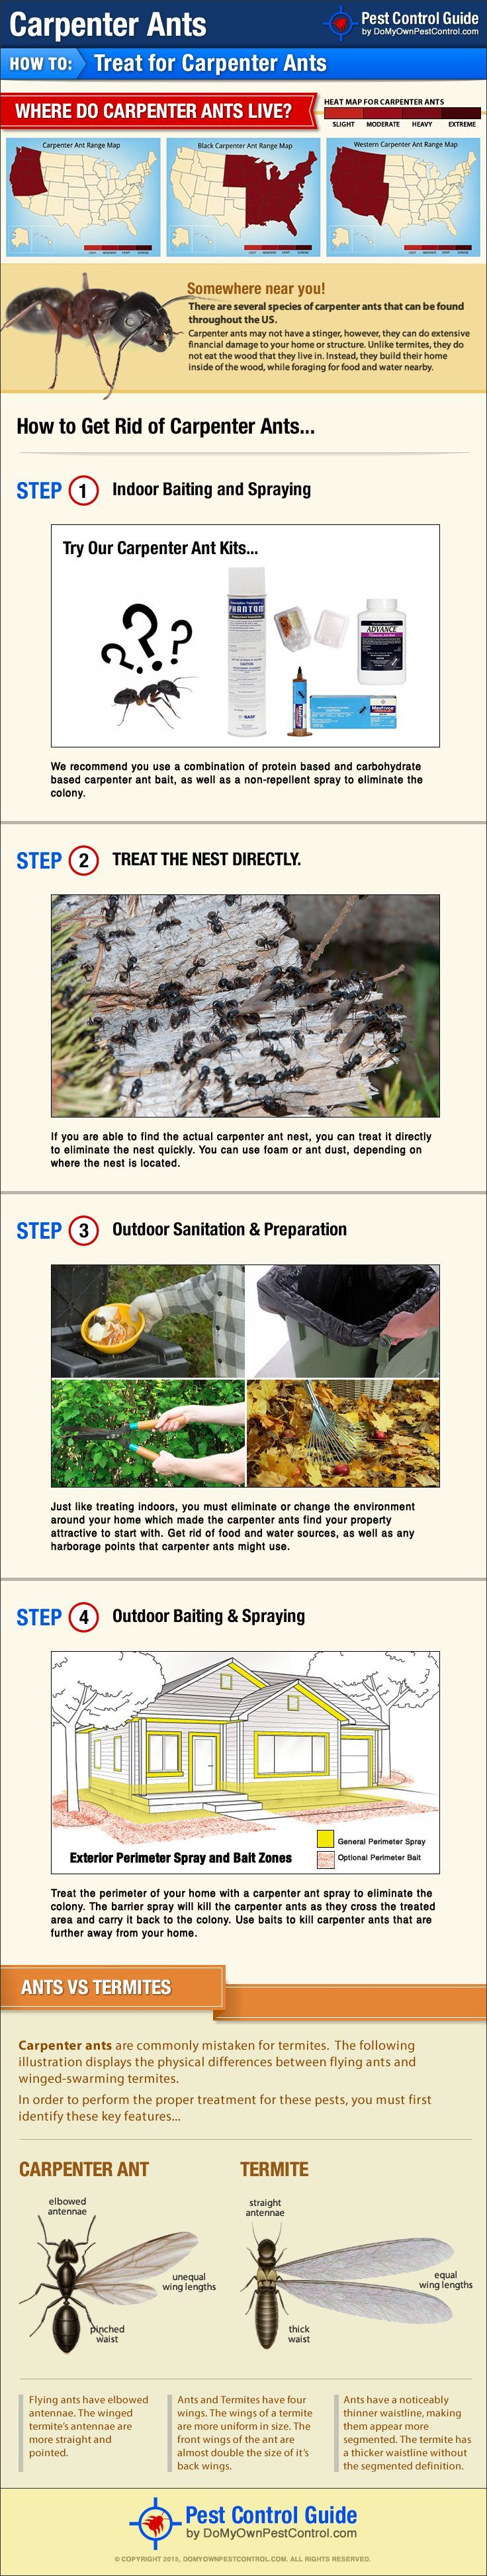 Learn how to get rid of carpenter ants with this new DIY carpenter ant treatment guide. renting a house #frugality #savingmoney